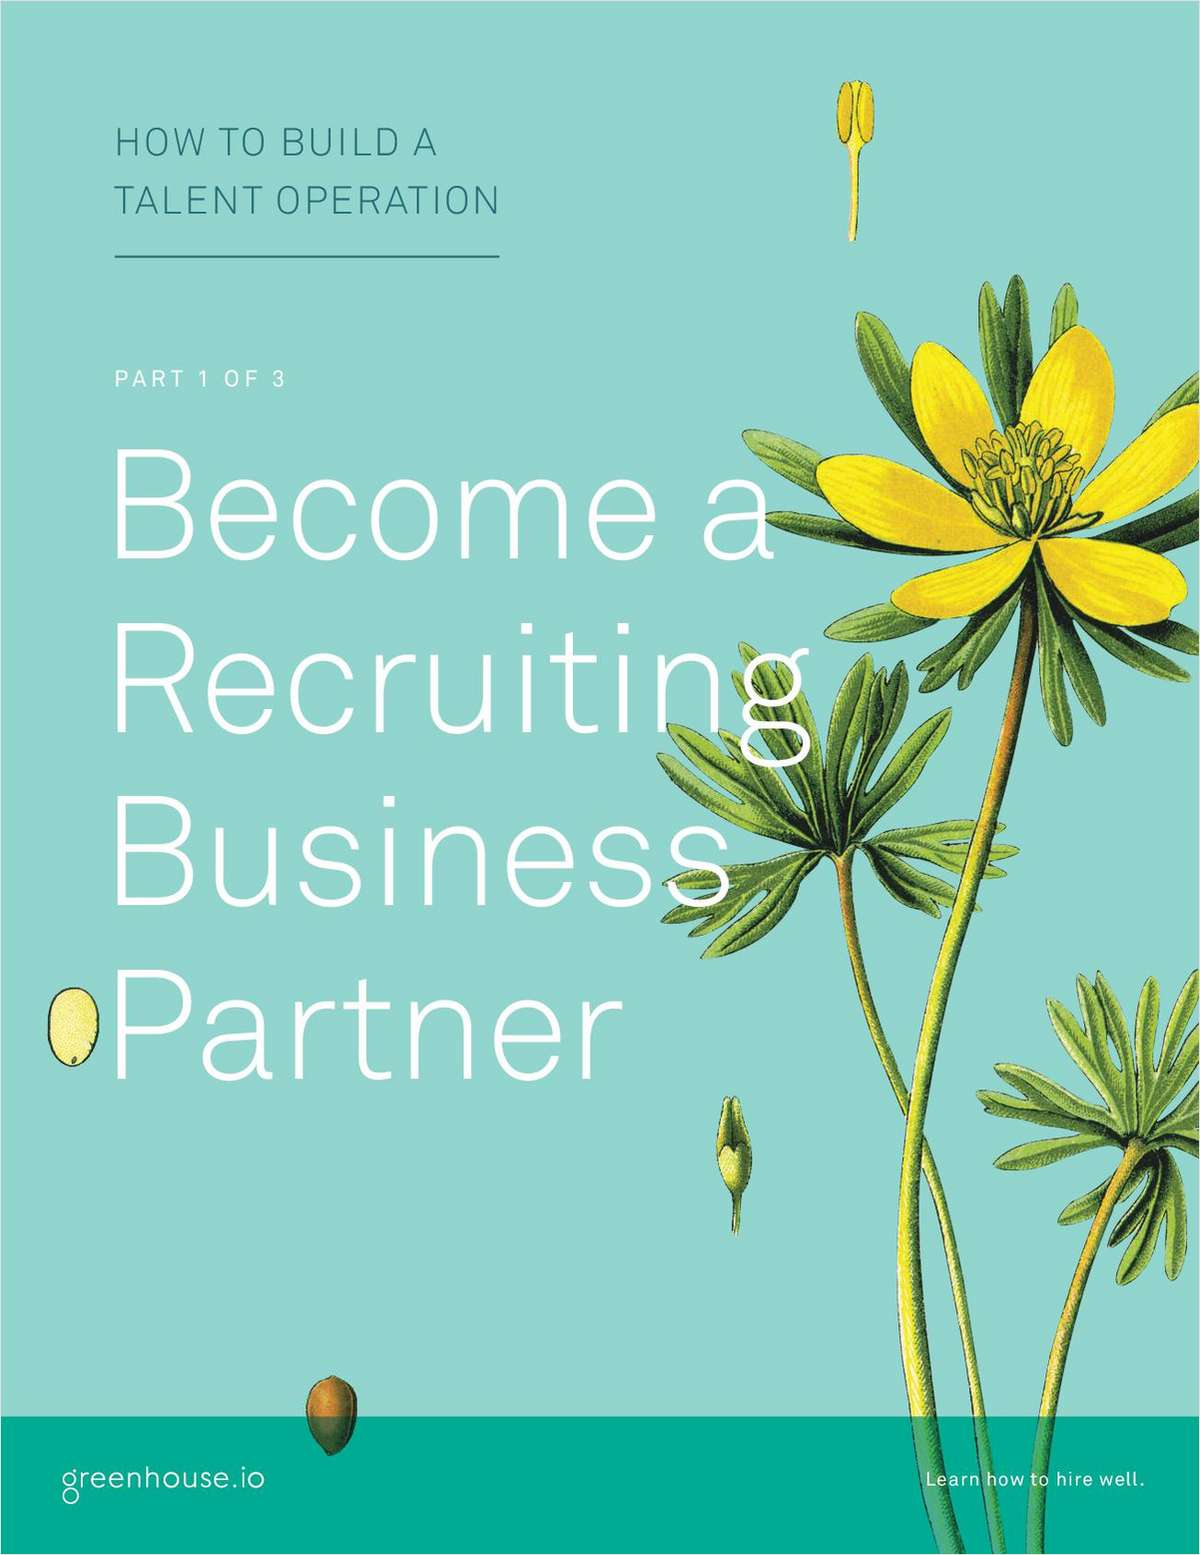 Become a Recruiting Business Partner